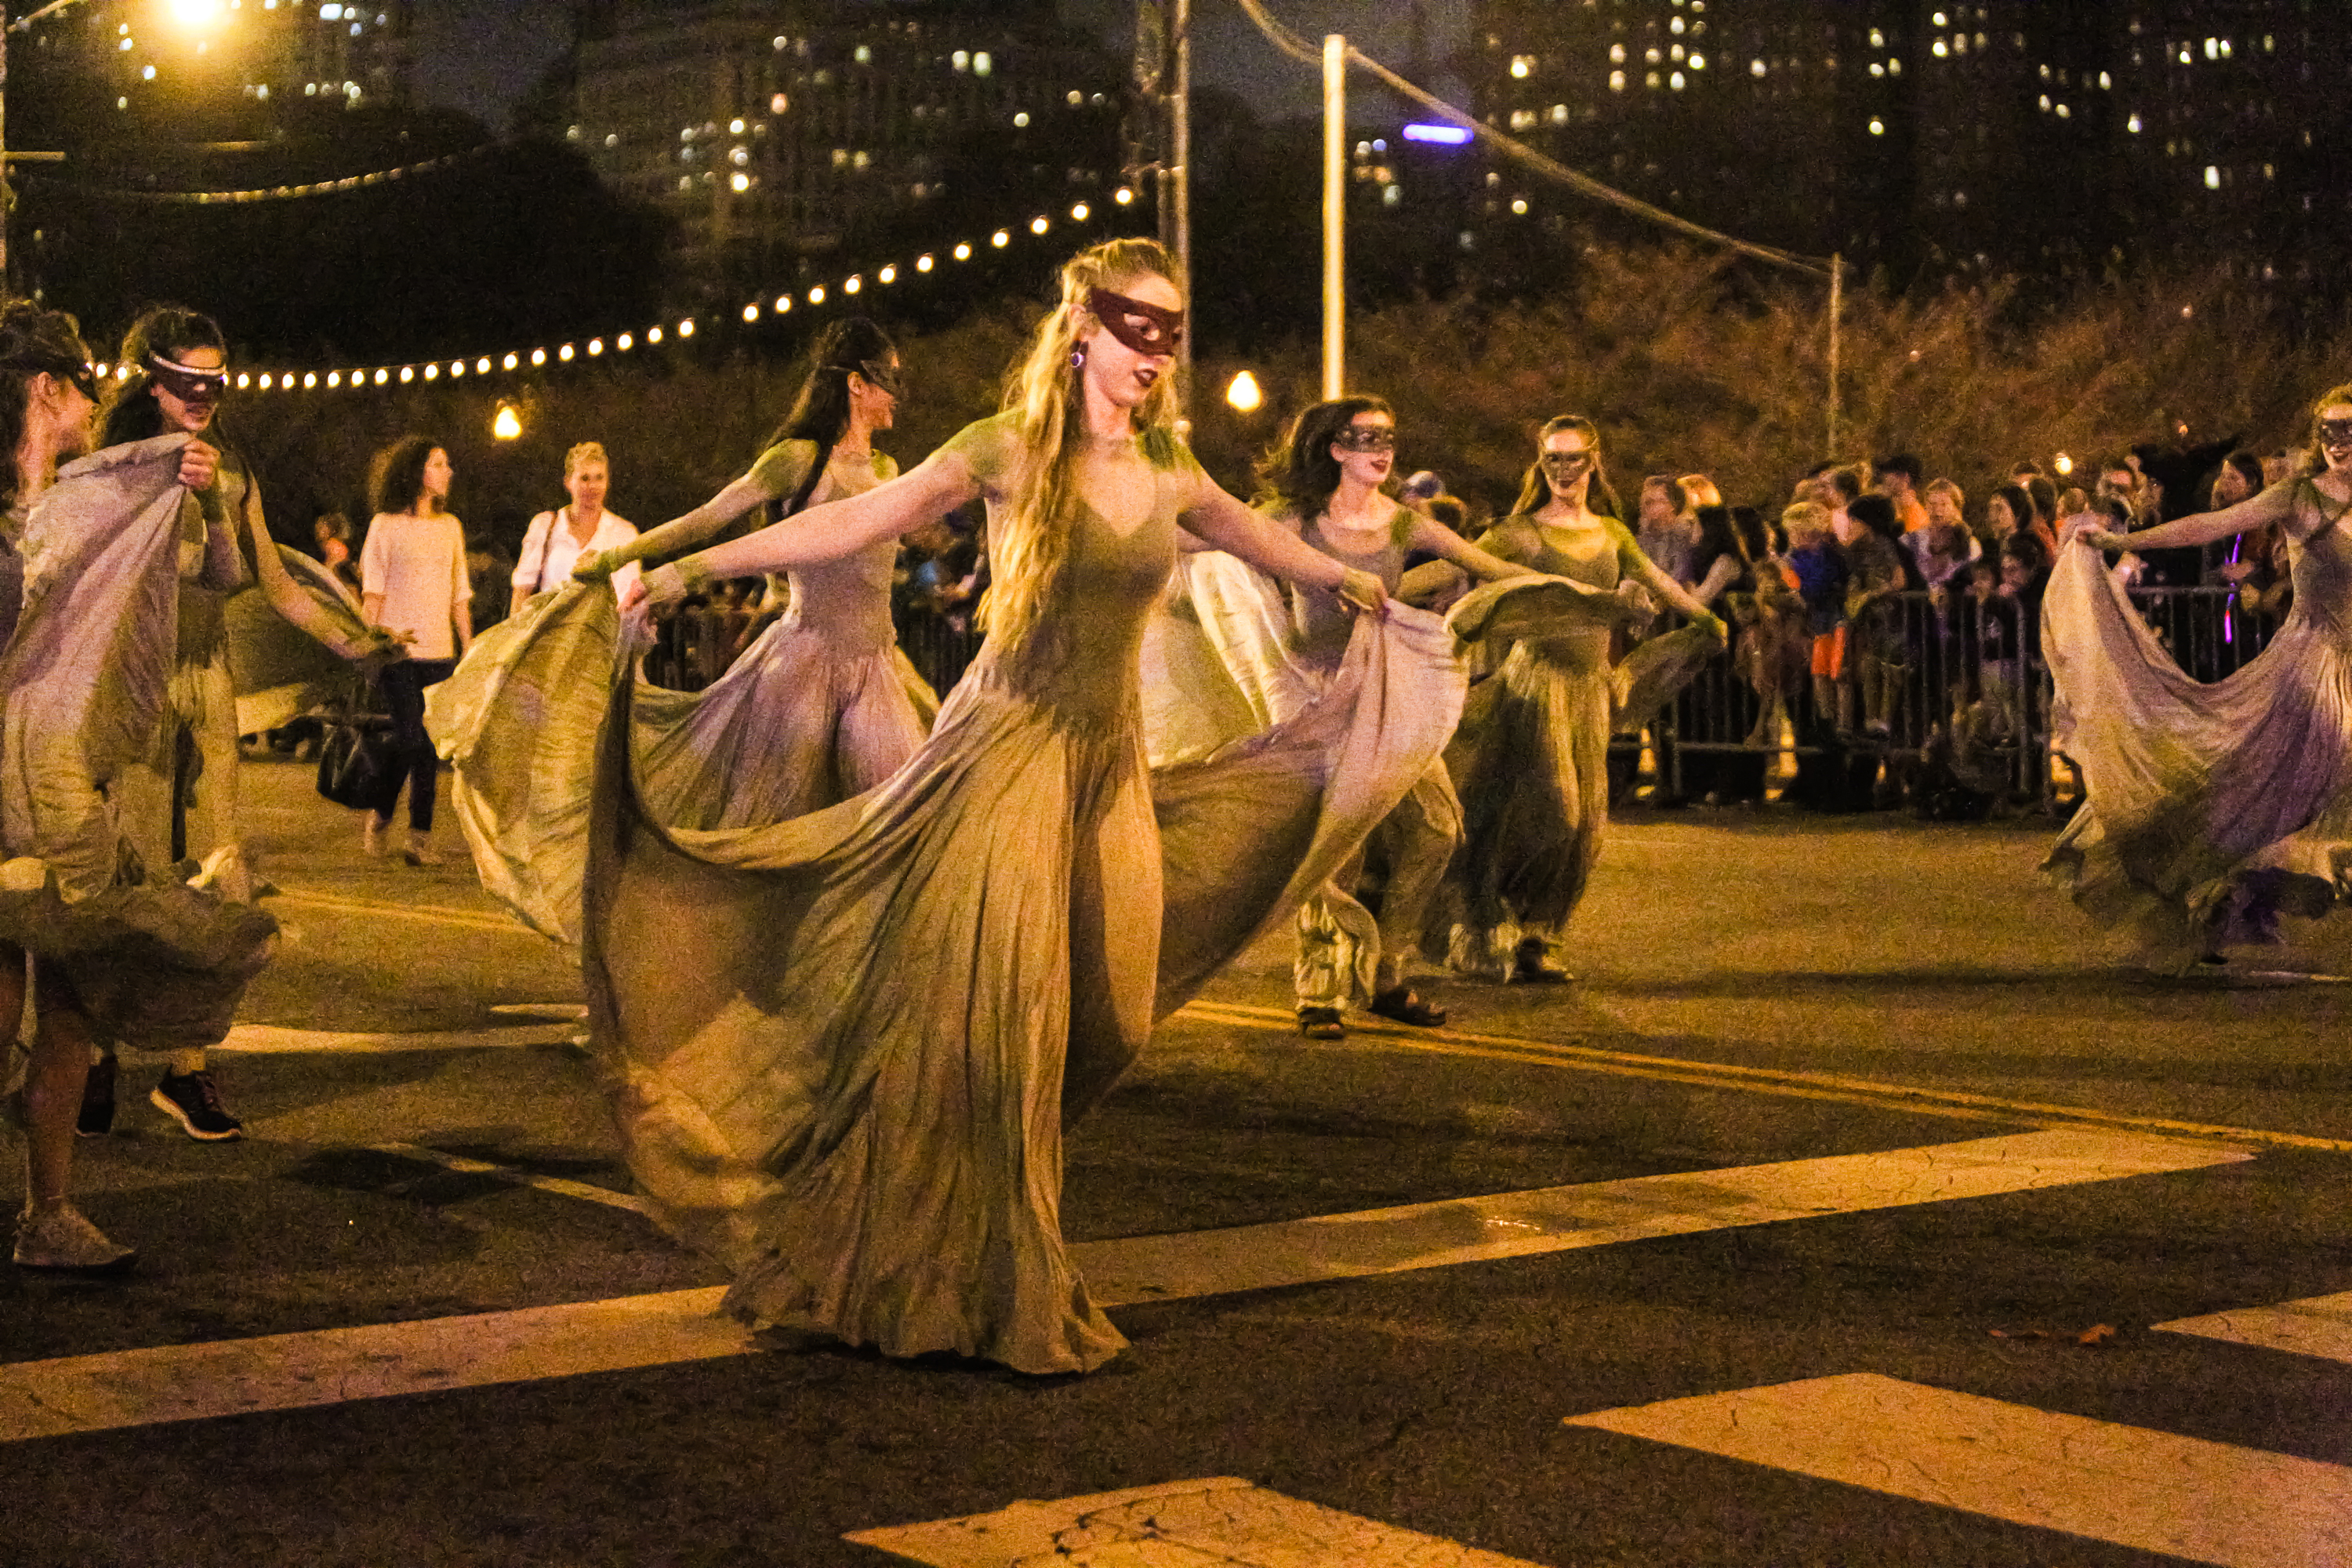 The Arts in the Dark Halloween Parade promises spectacle, music, dance and more, at it showcases the talents of Chicago's diverse cultural community.